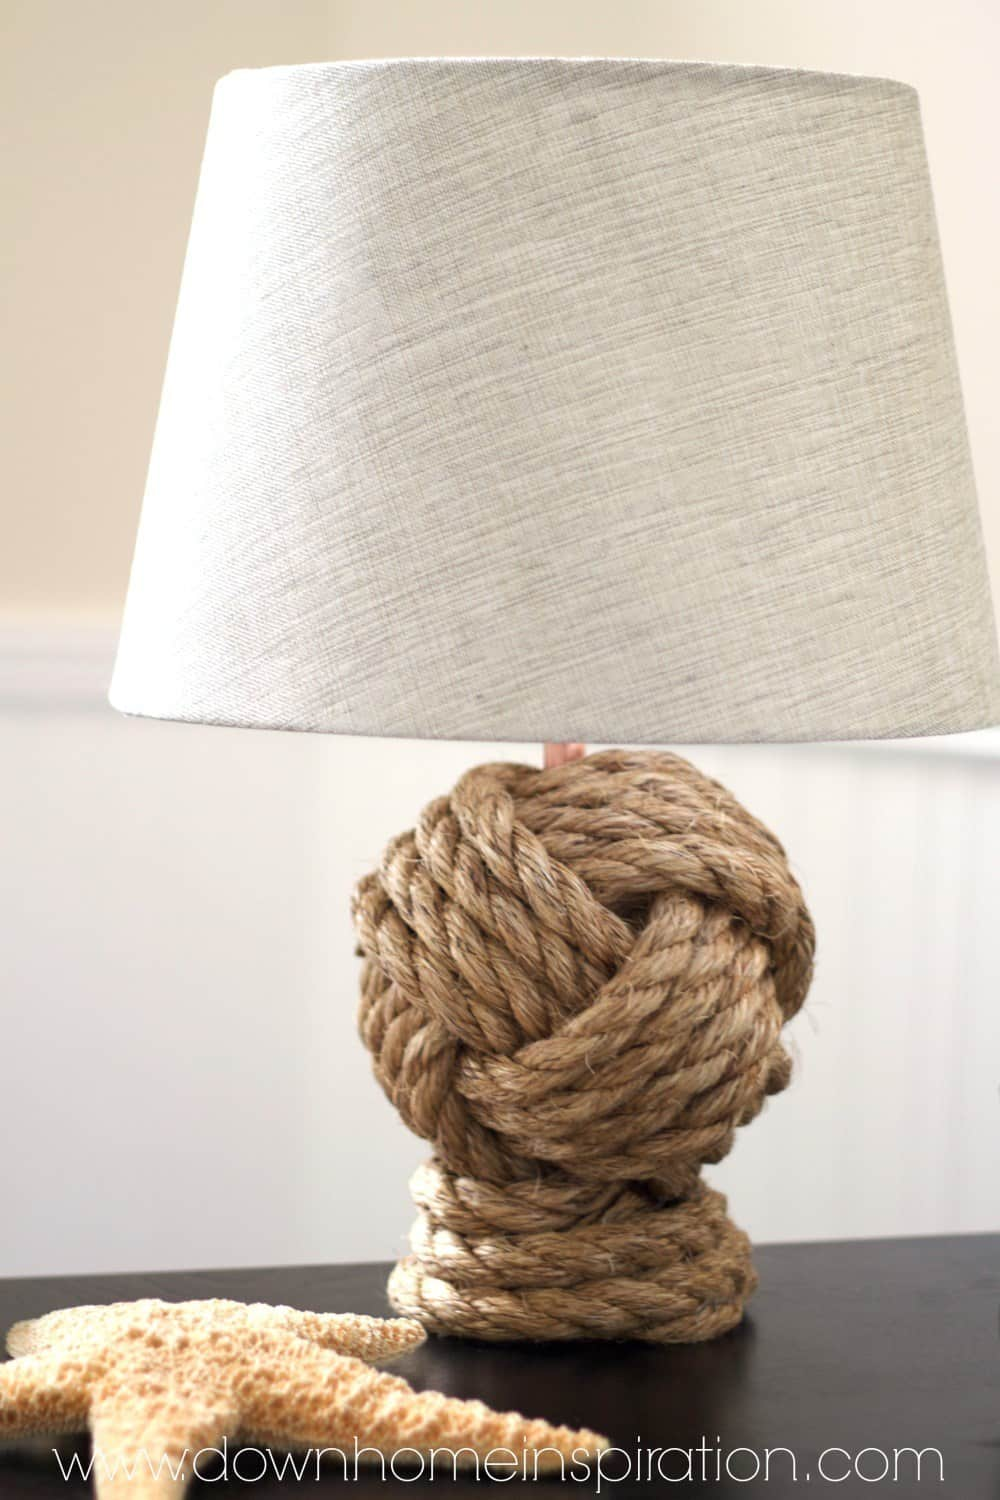 Pottery barn knock off knotted robe lamp